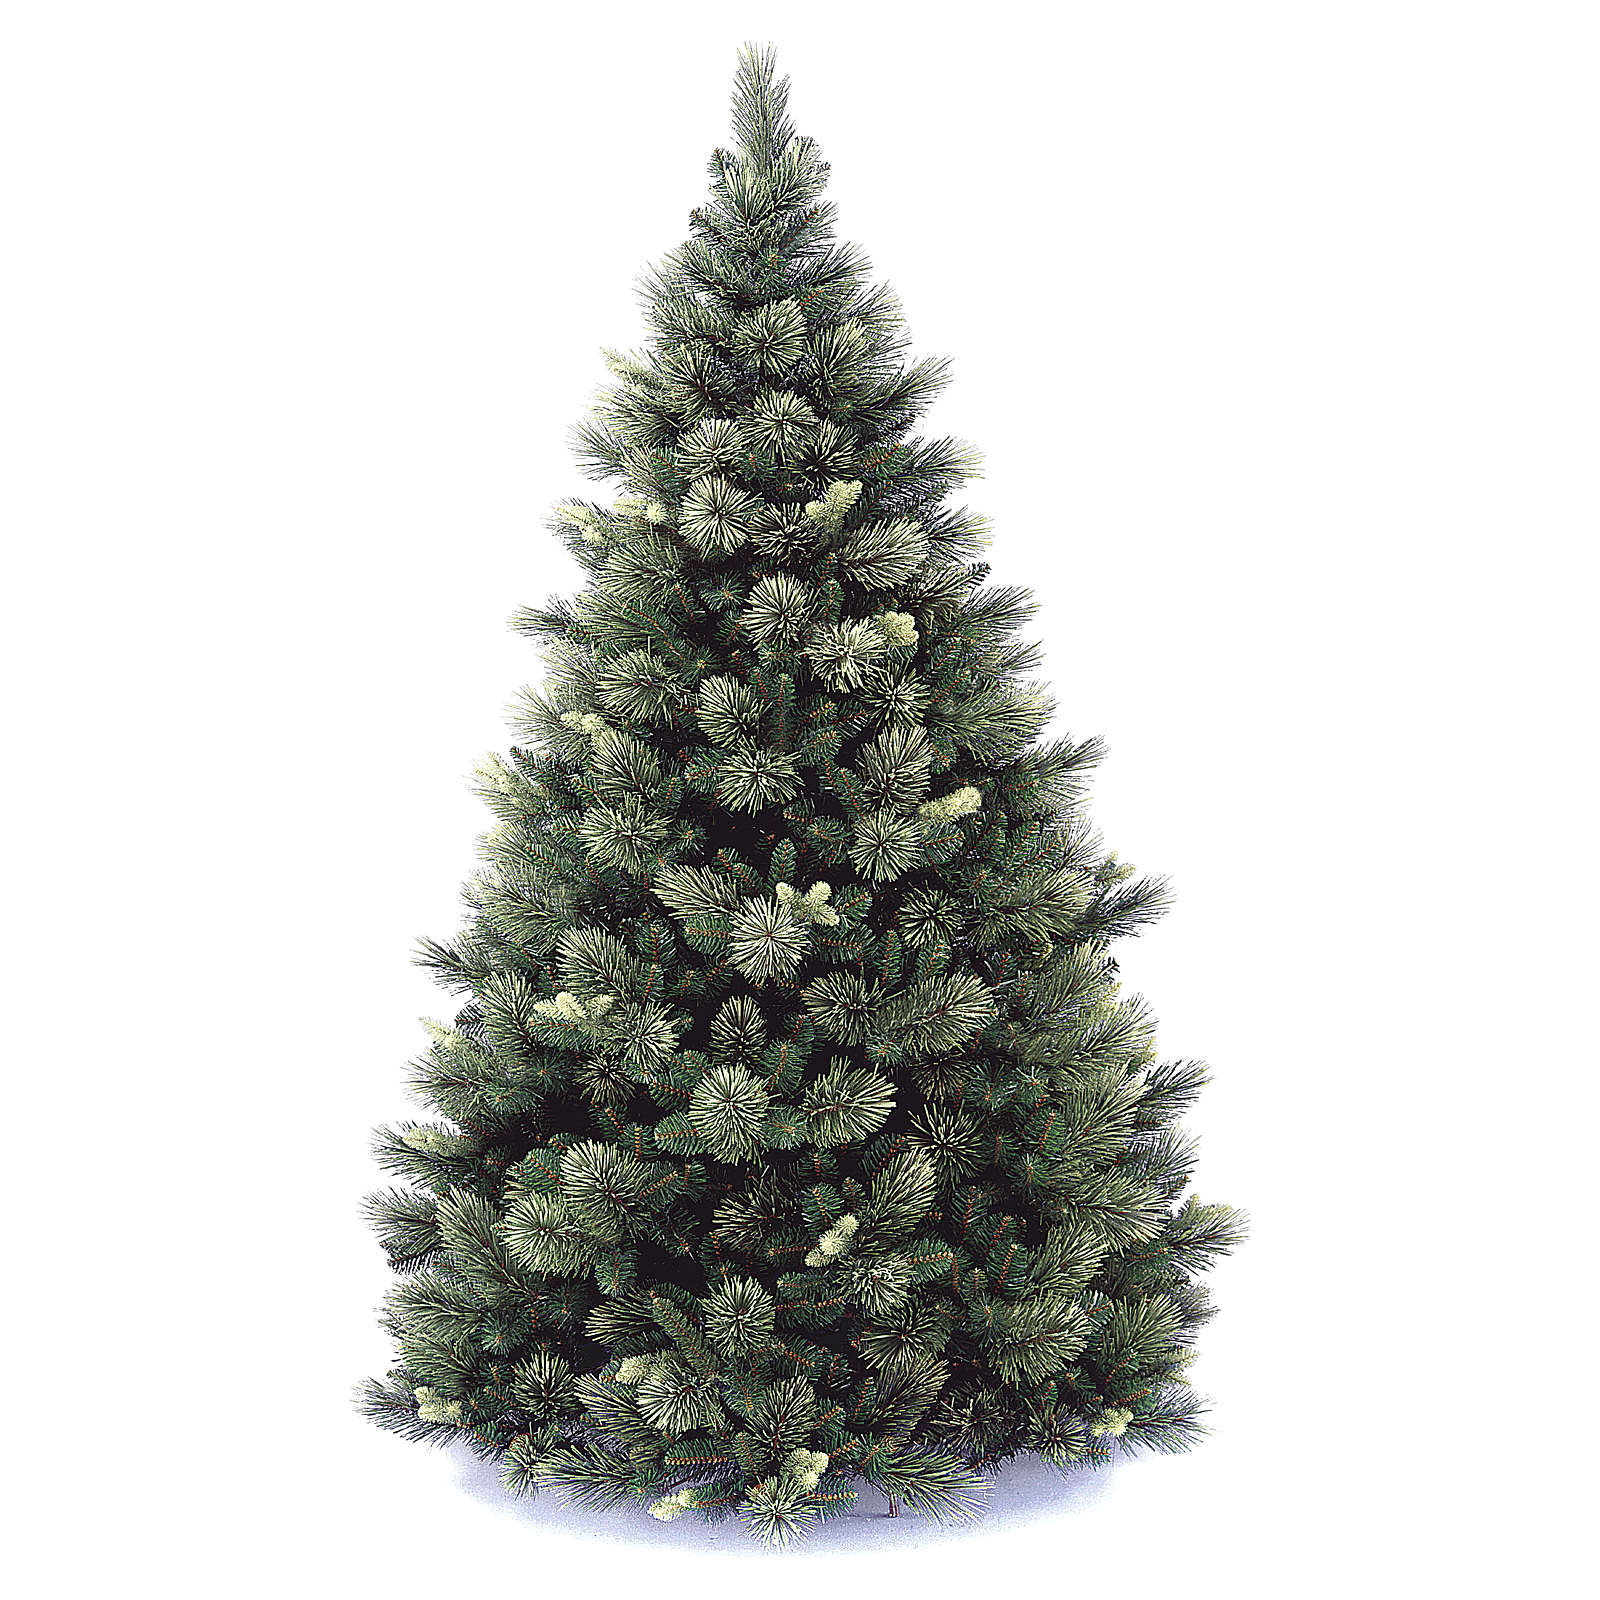 Sapin de Noël artificiel 225 cm couleur verte pommes de pin Carolina 3